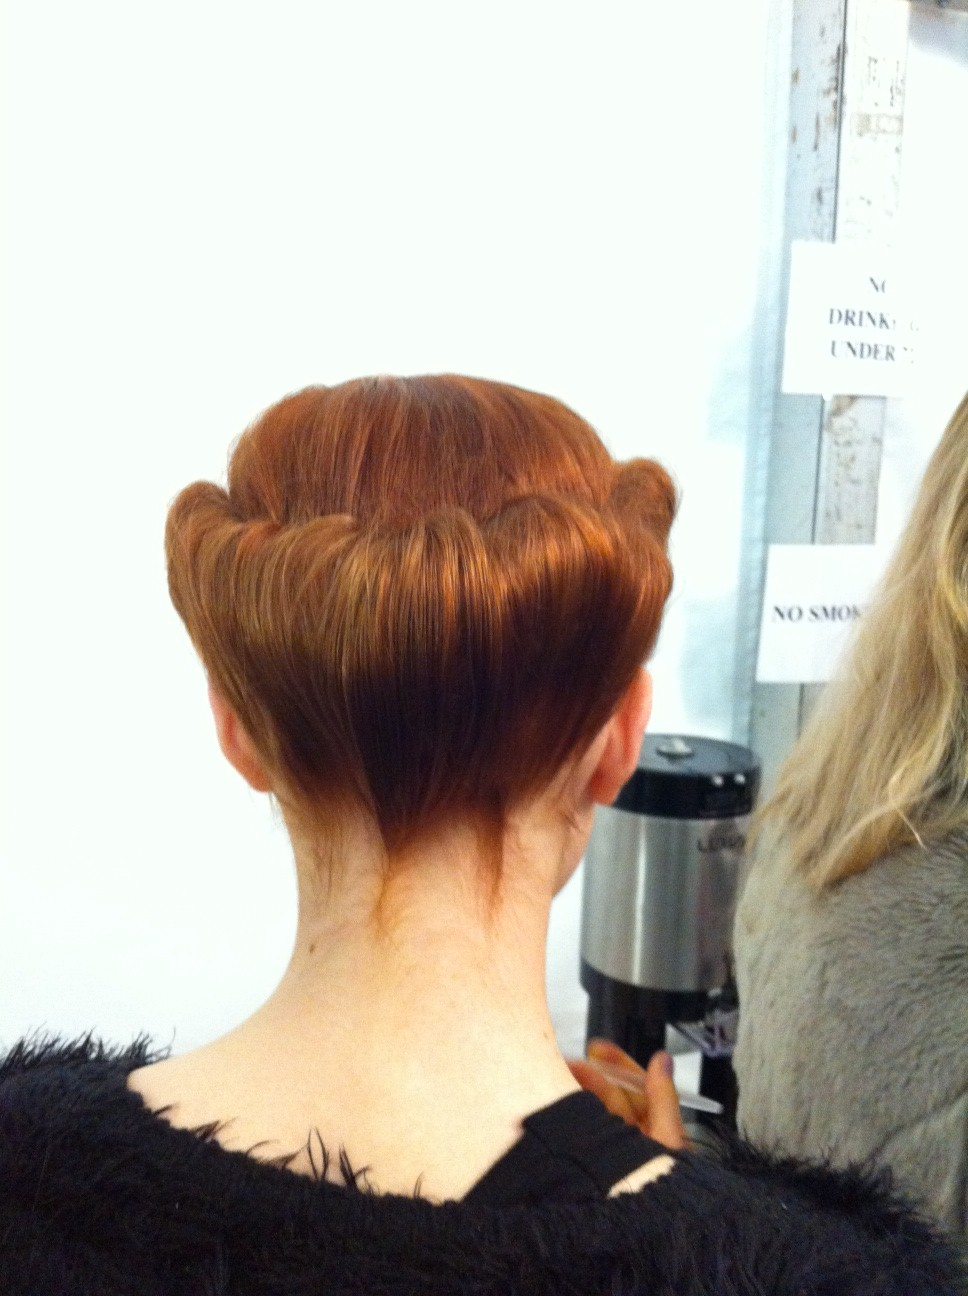 Orlando Pita's 1940s-inspired updo at Carolina Herrera